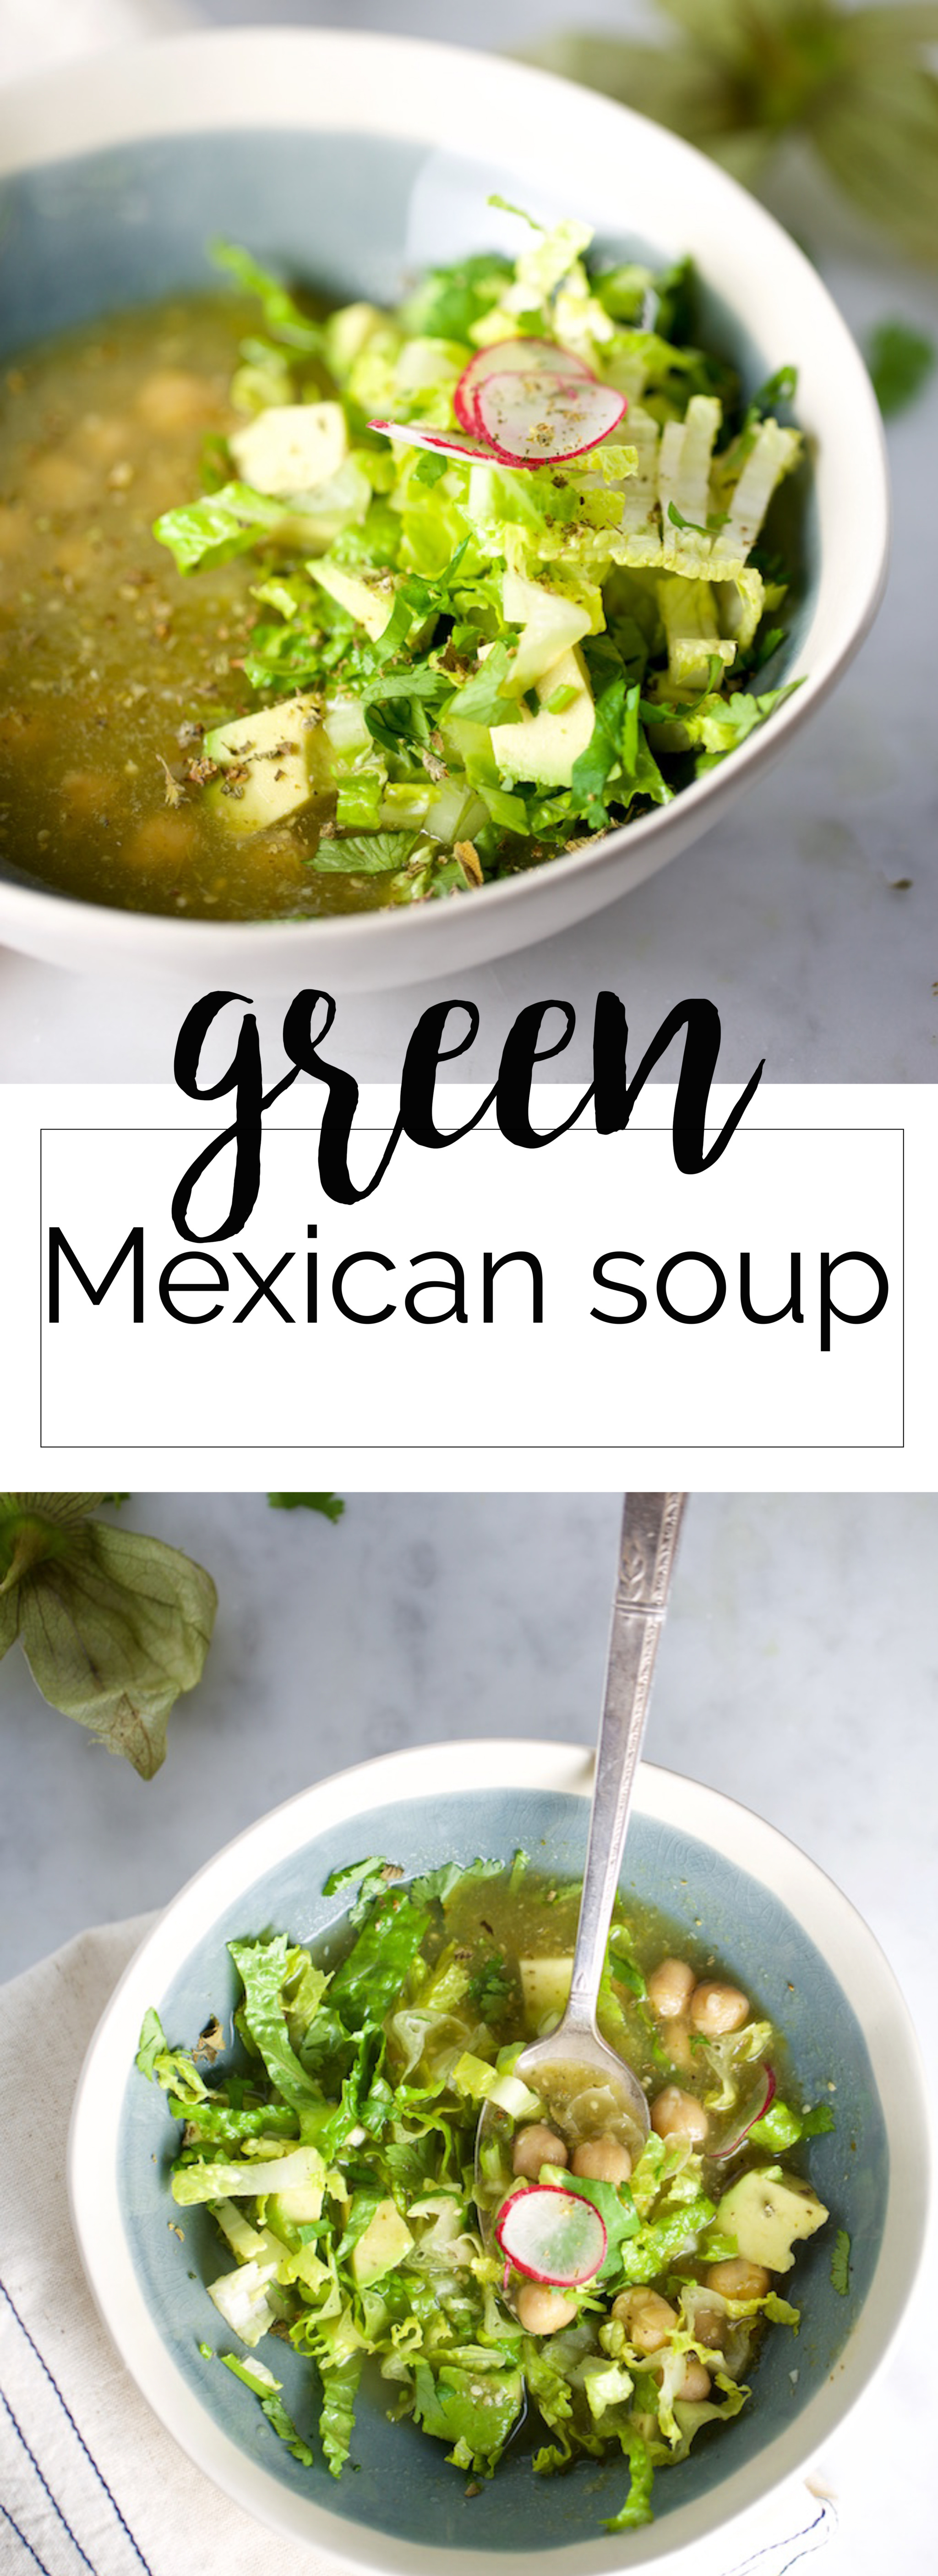 Green Mexican Soup with chickpeas, a great combination between green posole and salsa verde. It is easy, delicious and super fun to eat. This recipe is healthy, authentic Mexican food and vegan.